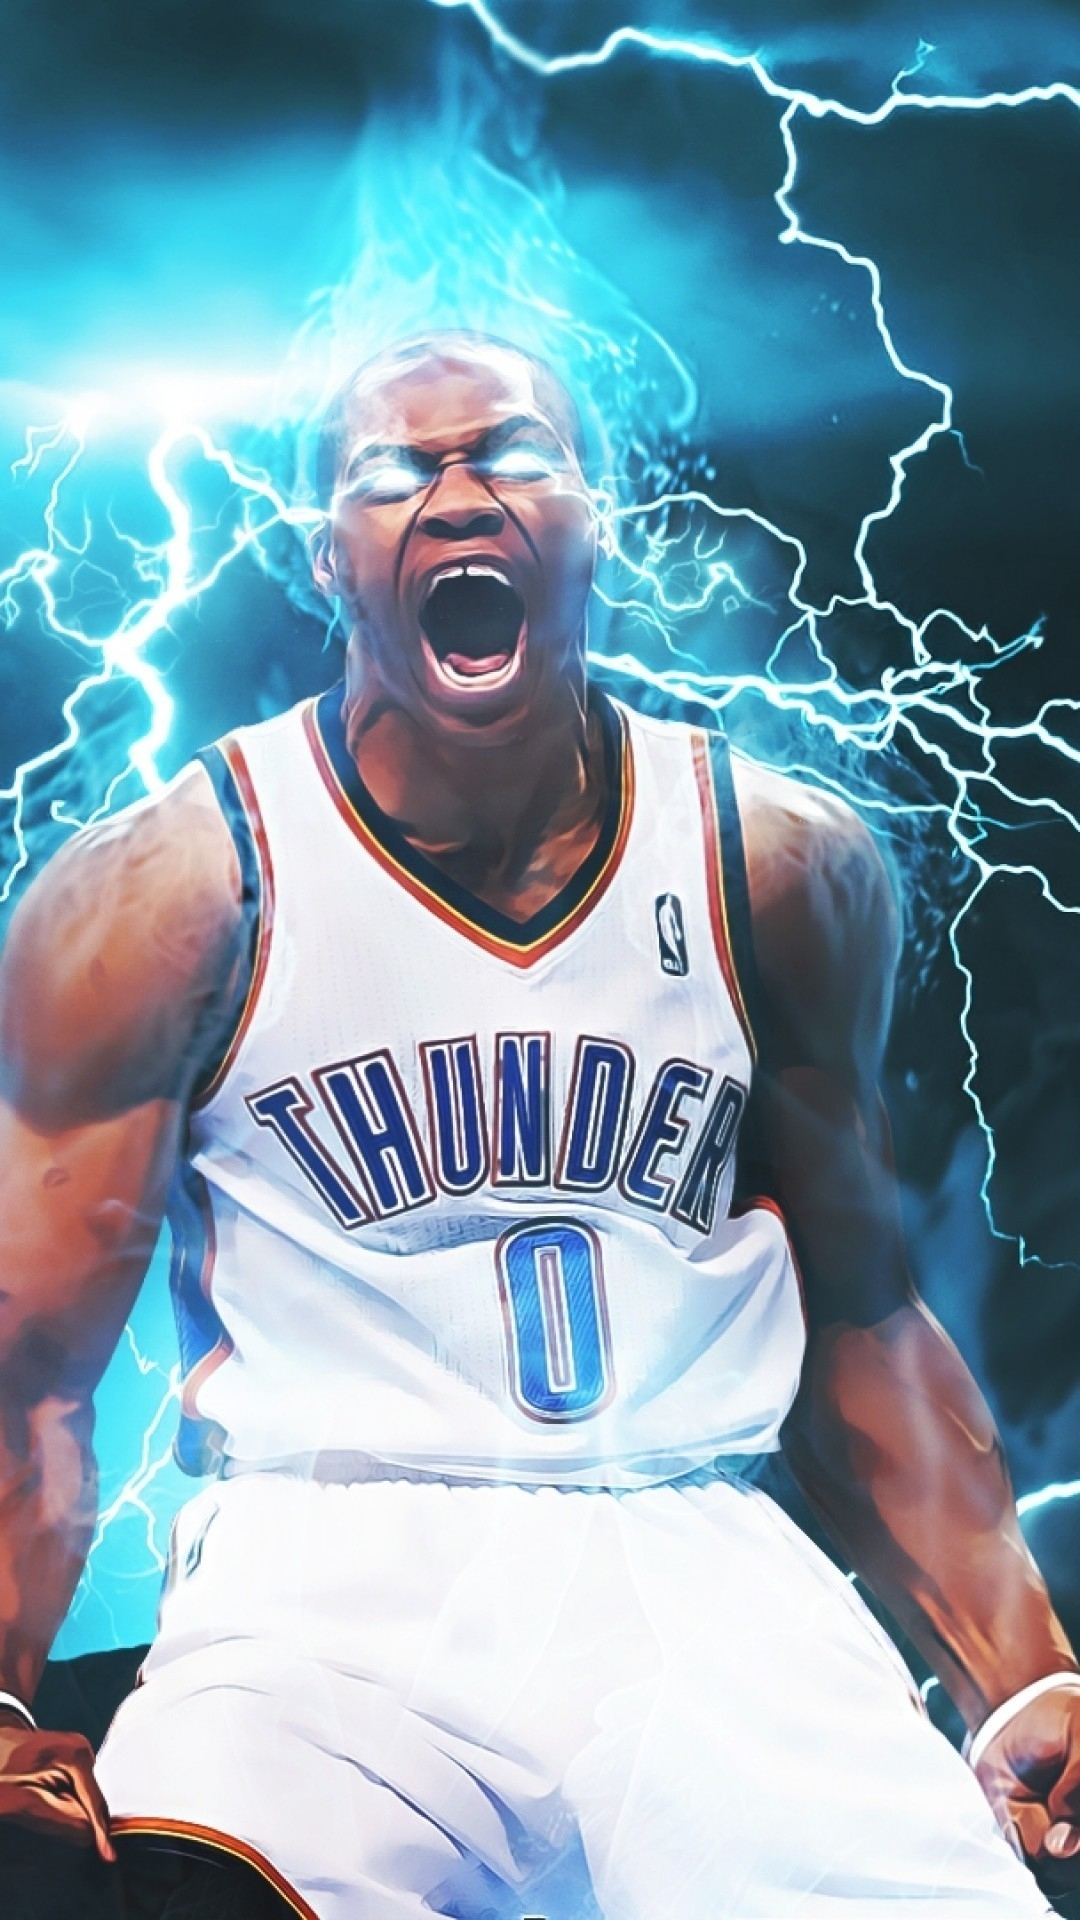 russell westbrook wallpaper iphone (68+ images)